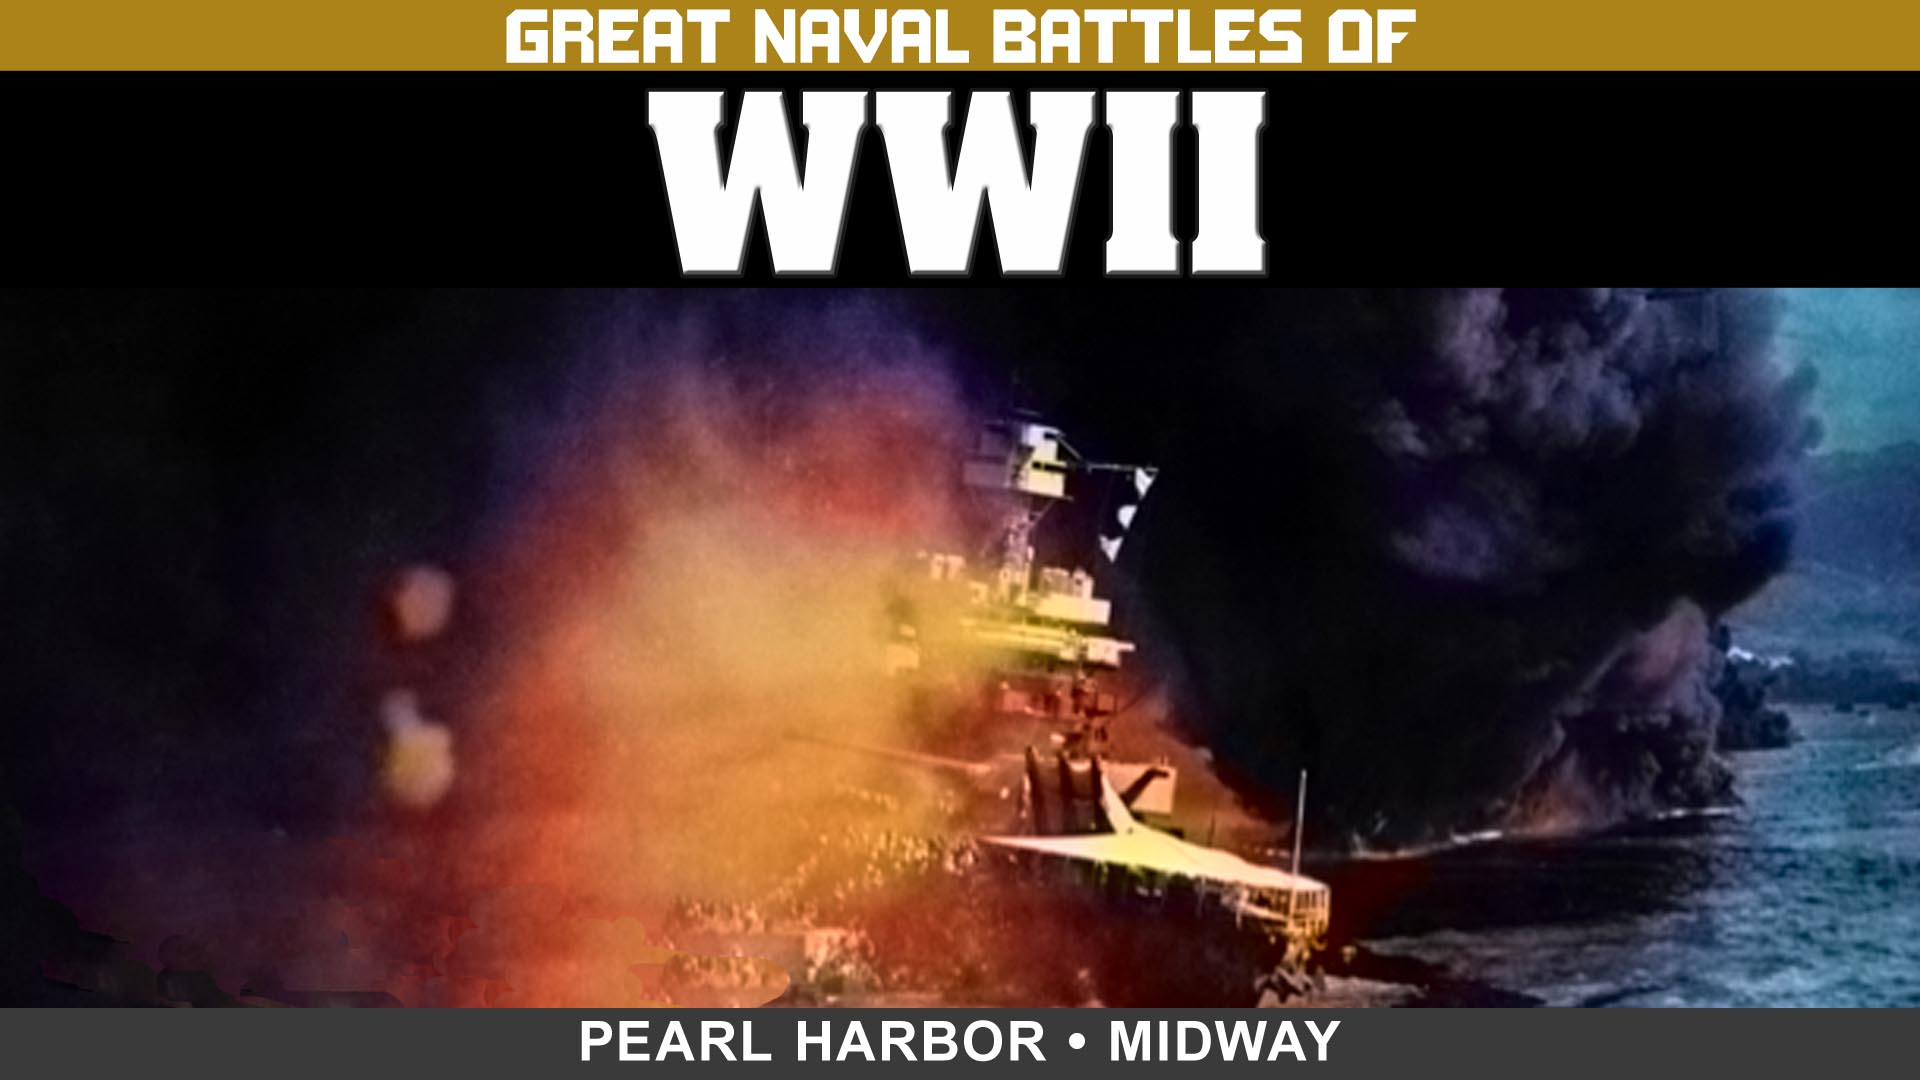 Great Naval Battles of WWII: Pearl Harbor & Midway -